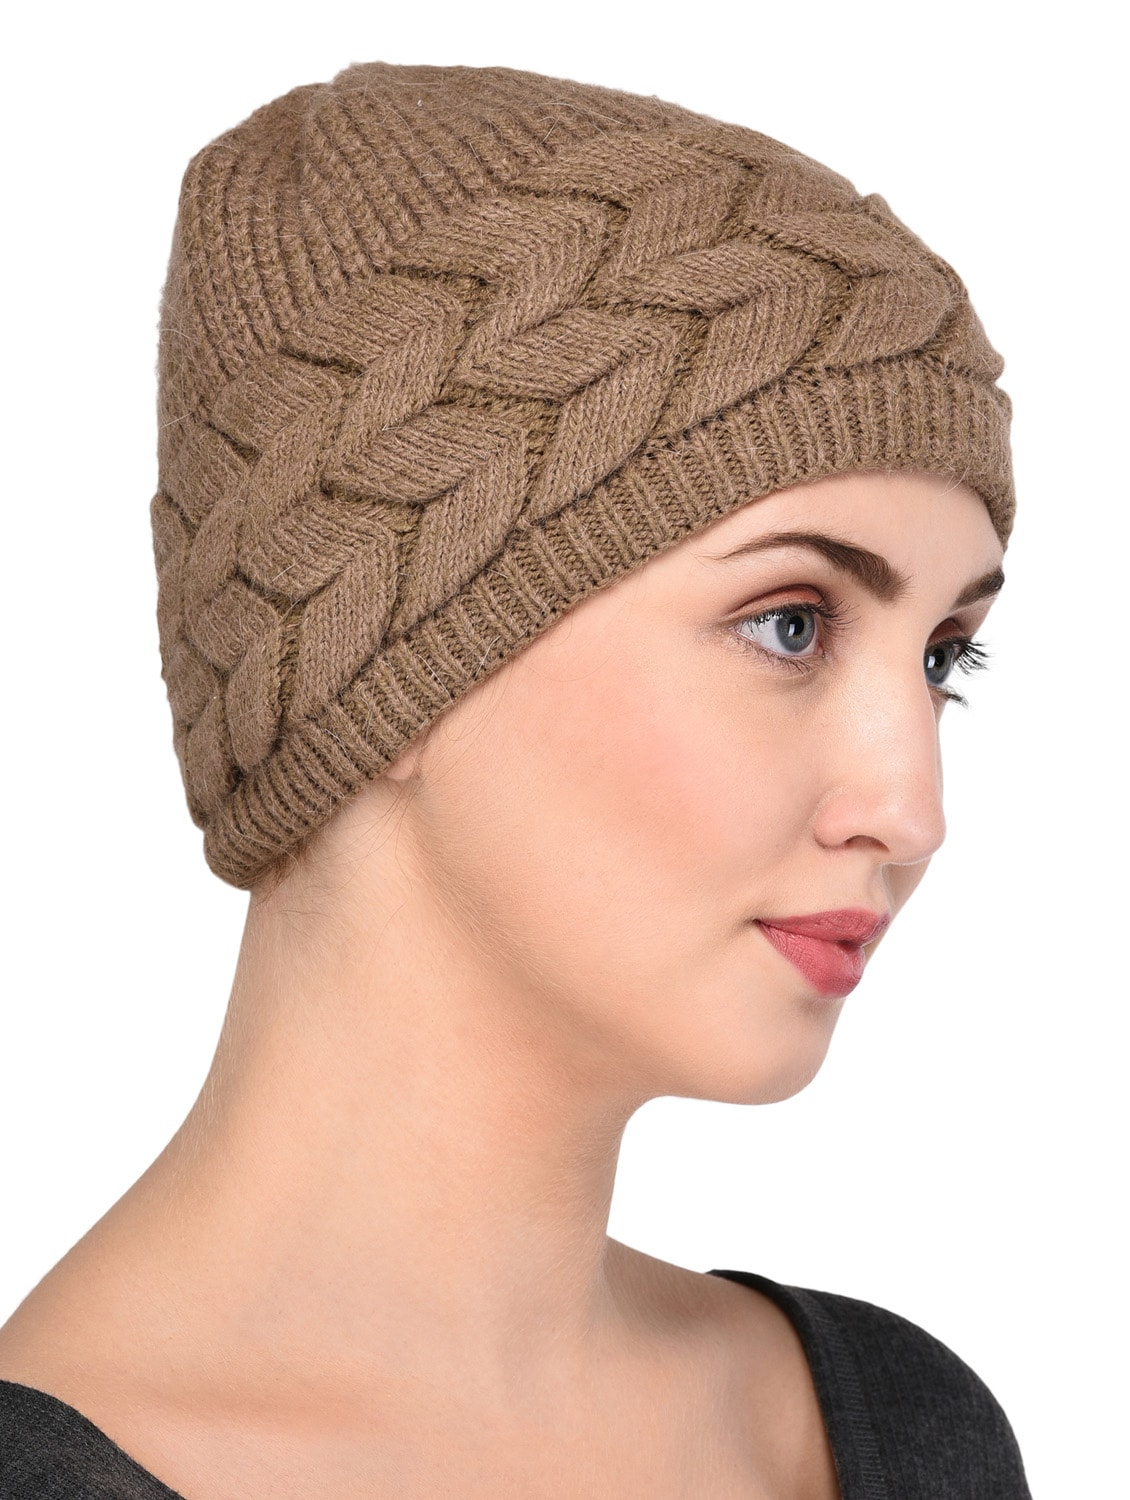 Buy Cable Knit Woolen Cap by Warmline - Online shopping for Caps in India  6eb8b433832